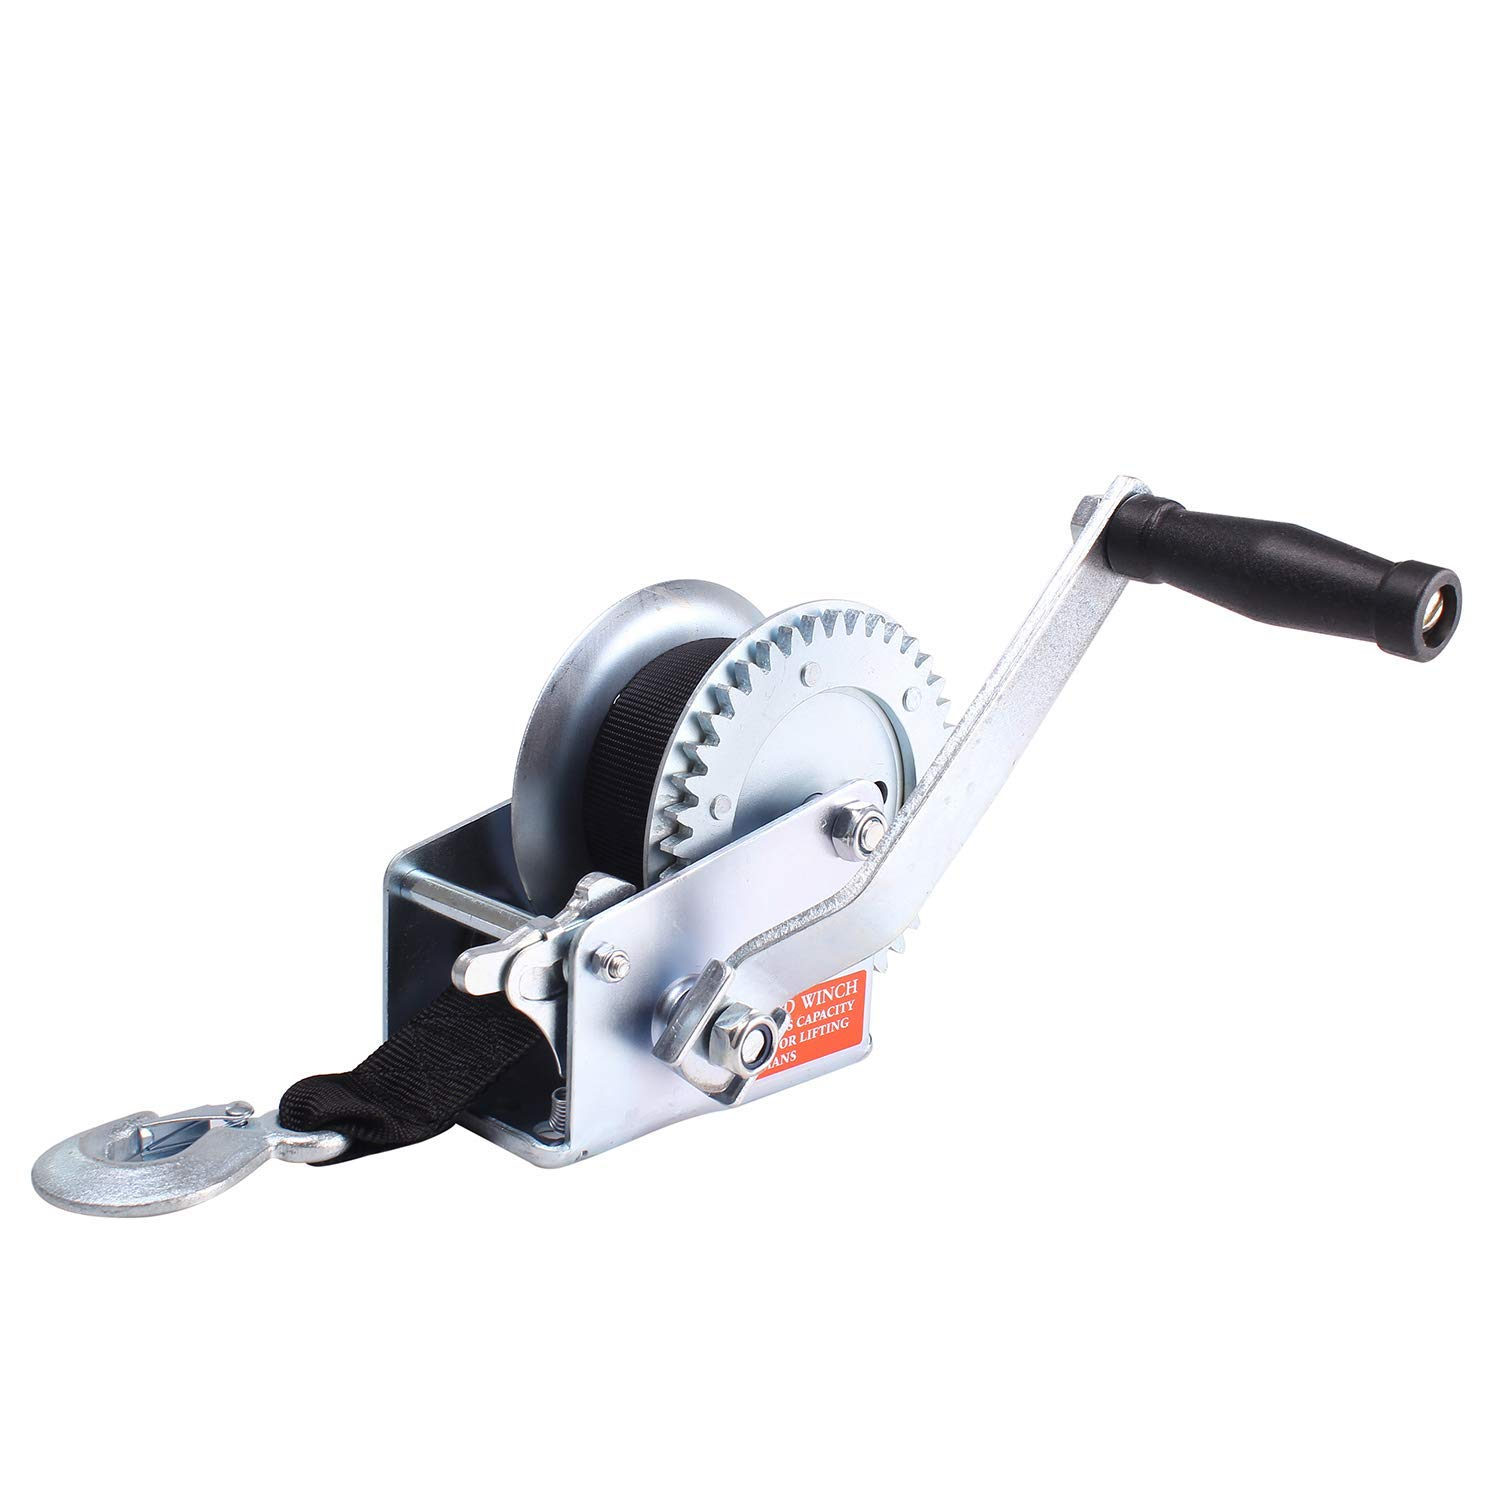 Amarite Manual Operated Hand Winch Boat Trailer Winch Hand Winch Mount 1200 lbs by Amarite